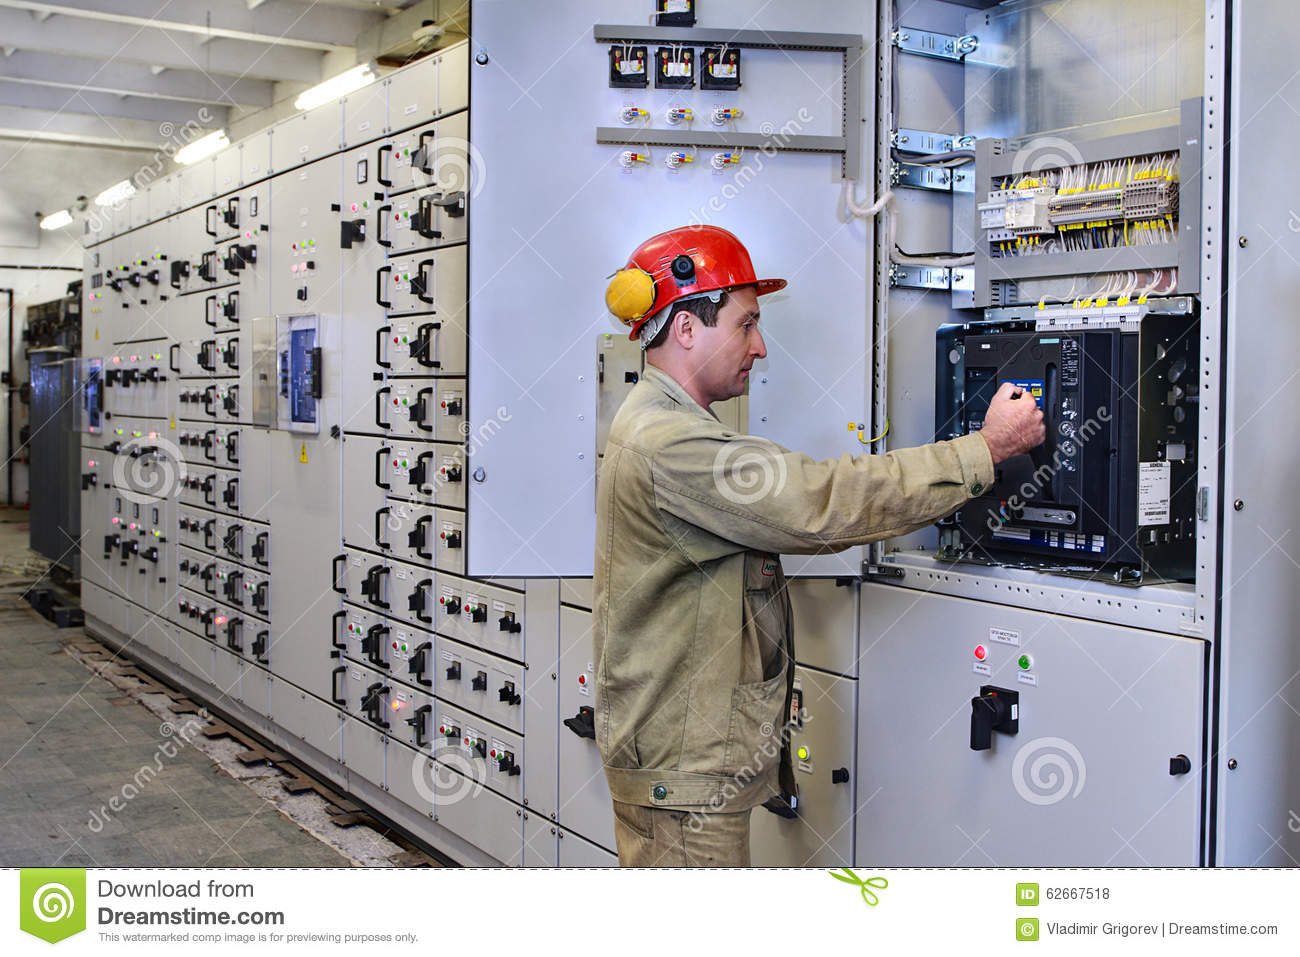 Electrical Engineer Equipment : Electrical engineer uses equipment of the switchboard